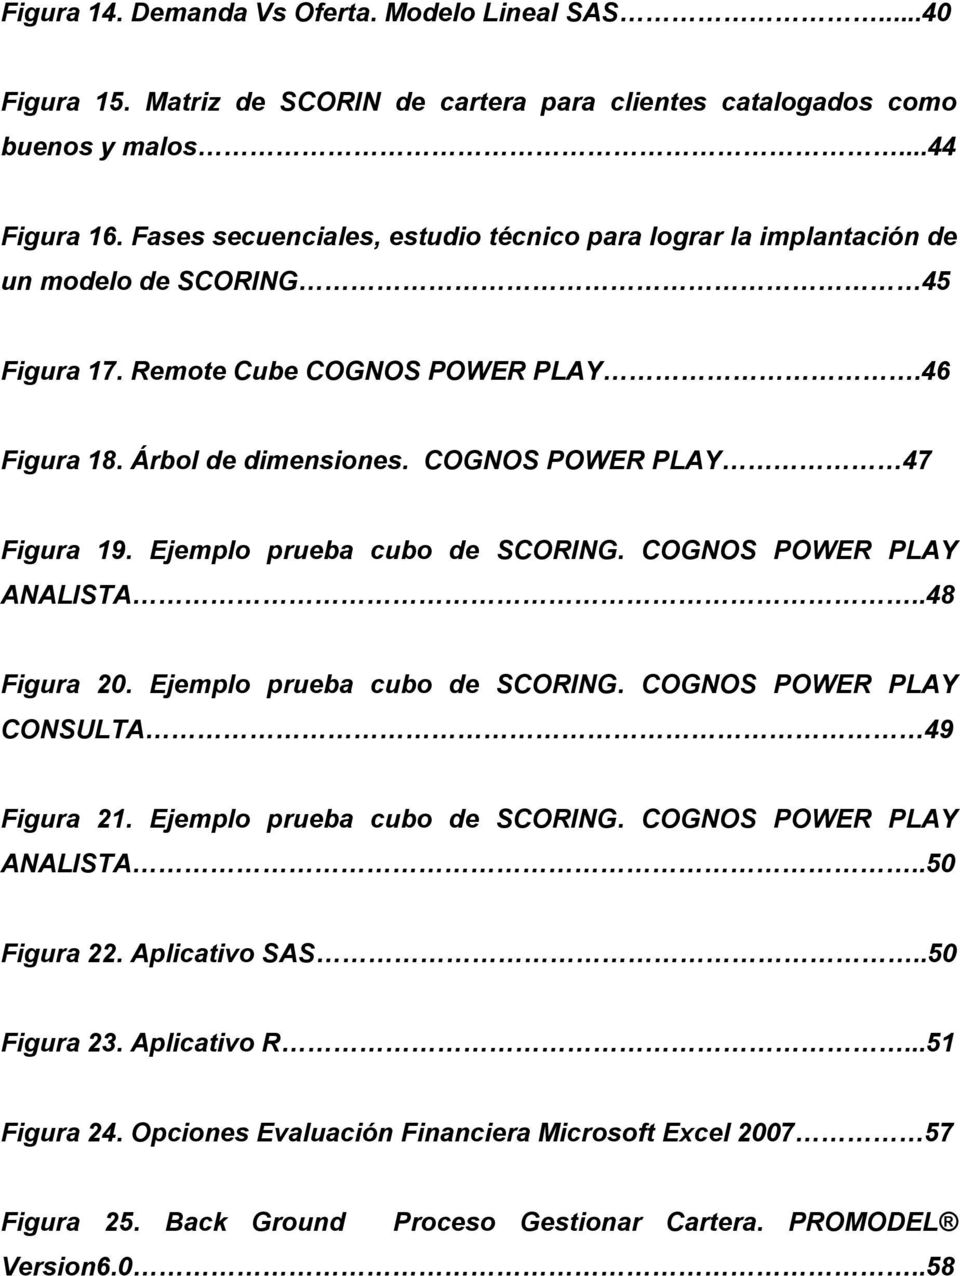 COGNOS POWER PLAY 47 Figura 19. Ejemplo prueba cubo de SCORING. COGNOS POWER PLAY ANALISTA..48 Figura 20. Ejemplo prueba cubo de SCORING. COGNOS POWER PLAY CONSULTA 49 Figura 21.